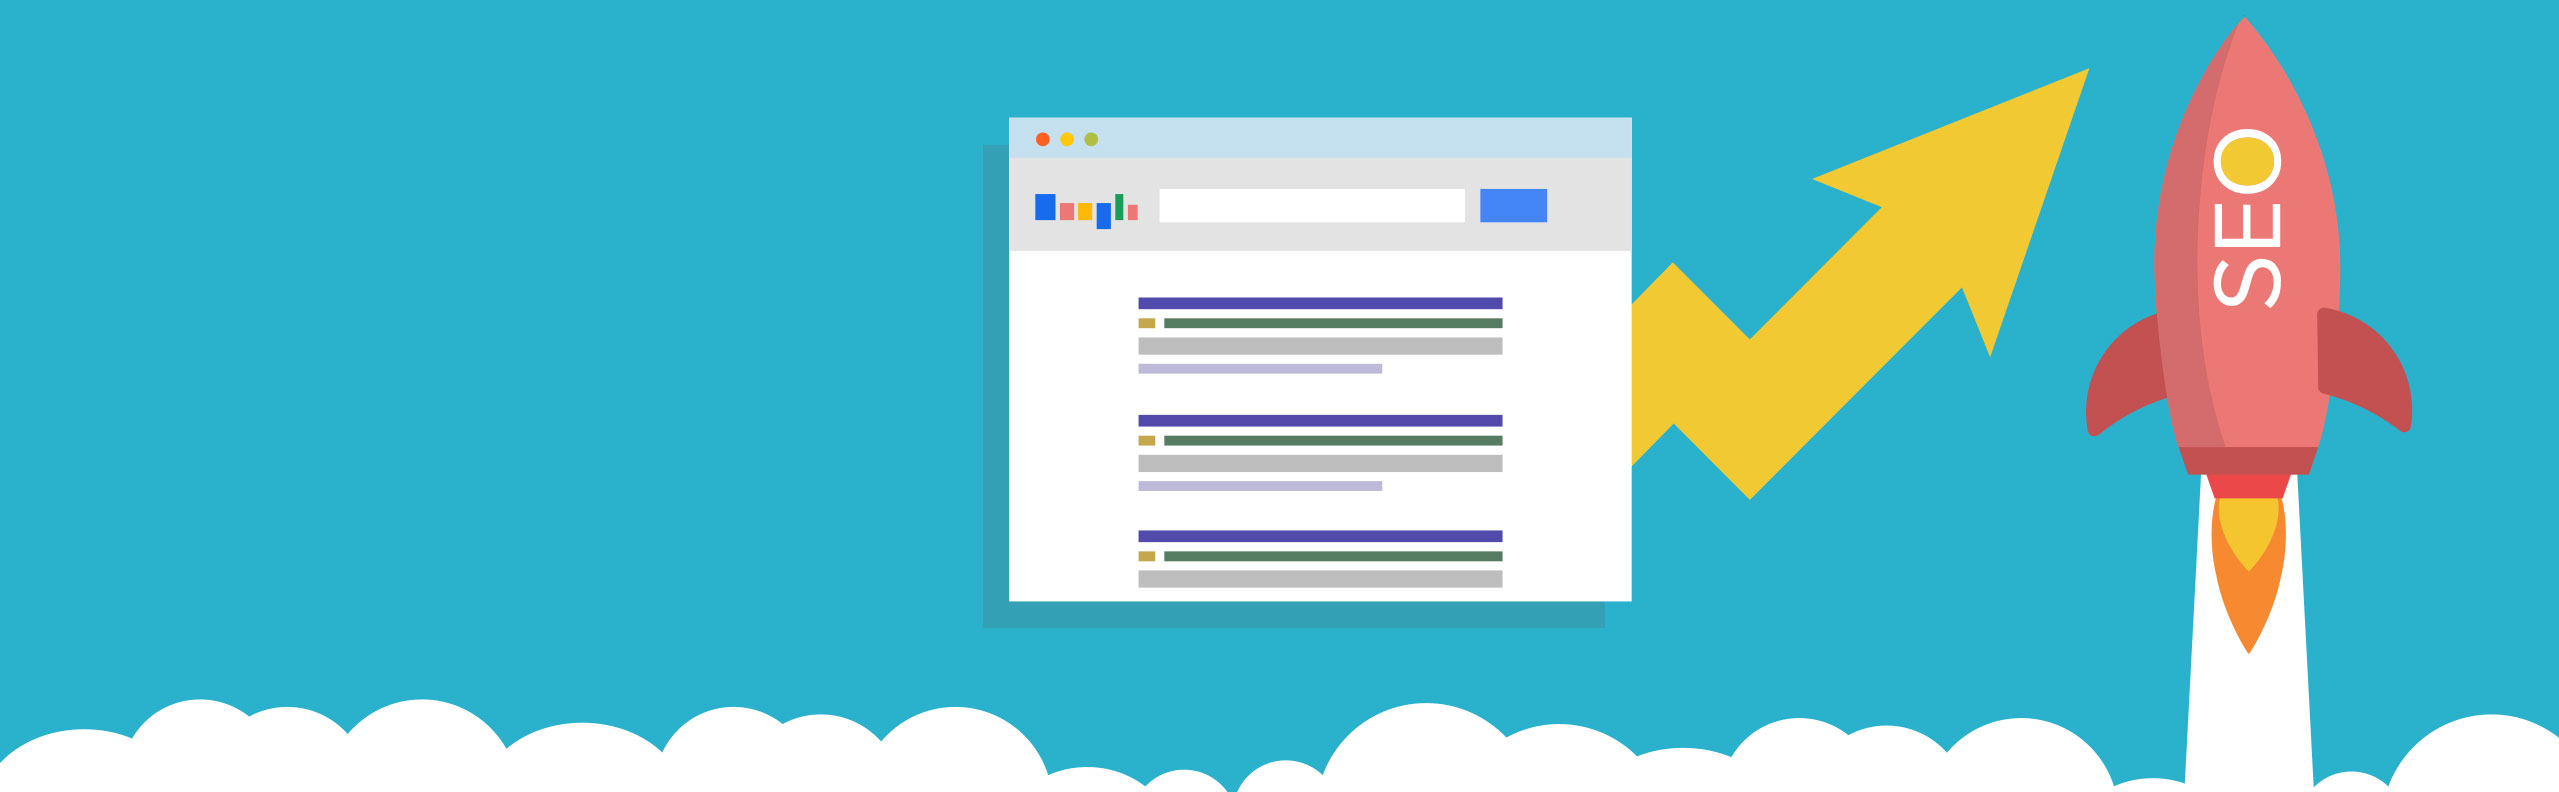 Top 30 On-Page SEO Tips for Search Visibility